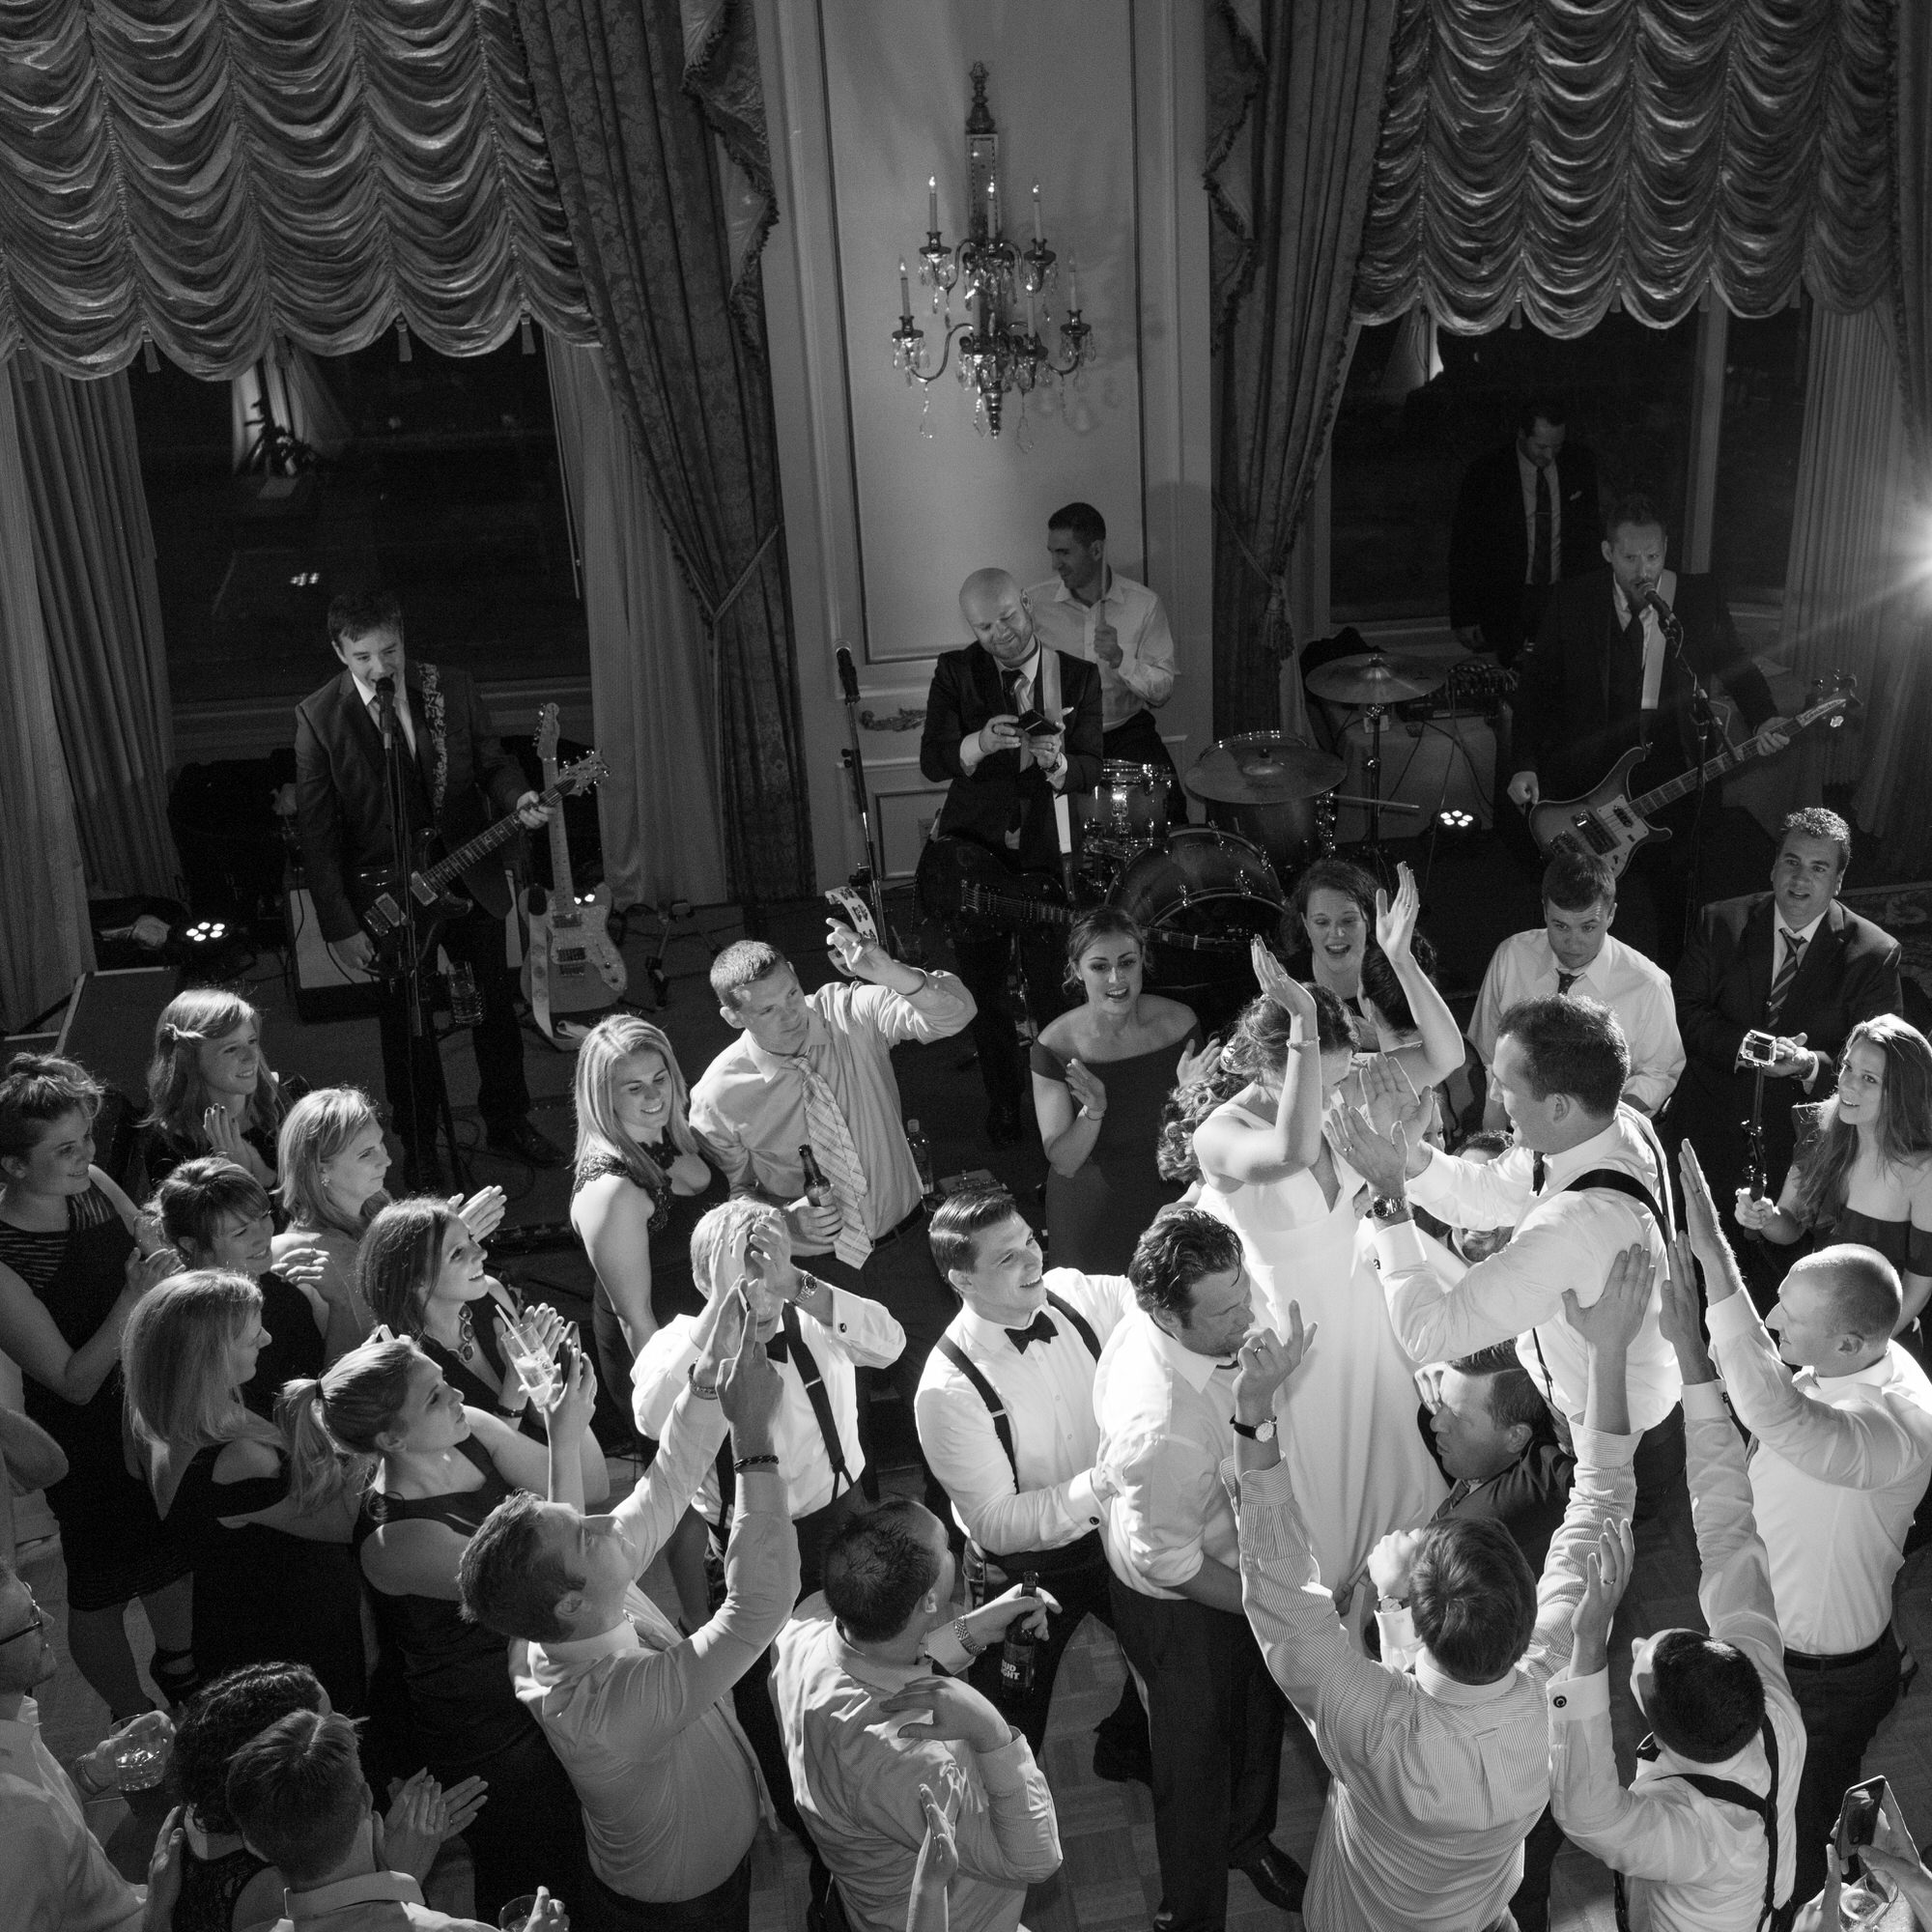 black and white image of bride and groom on crowd's shoulders in ballroom from above